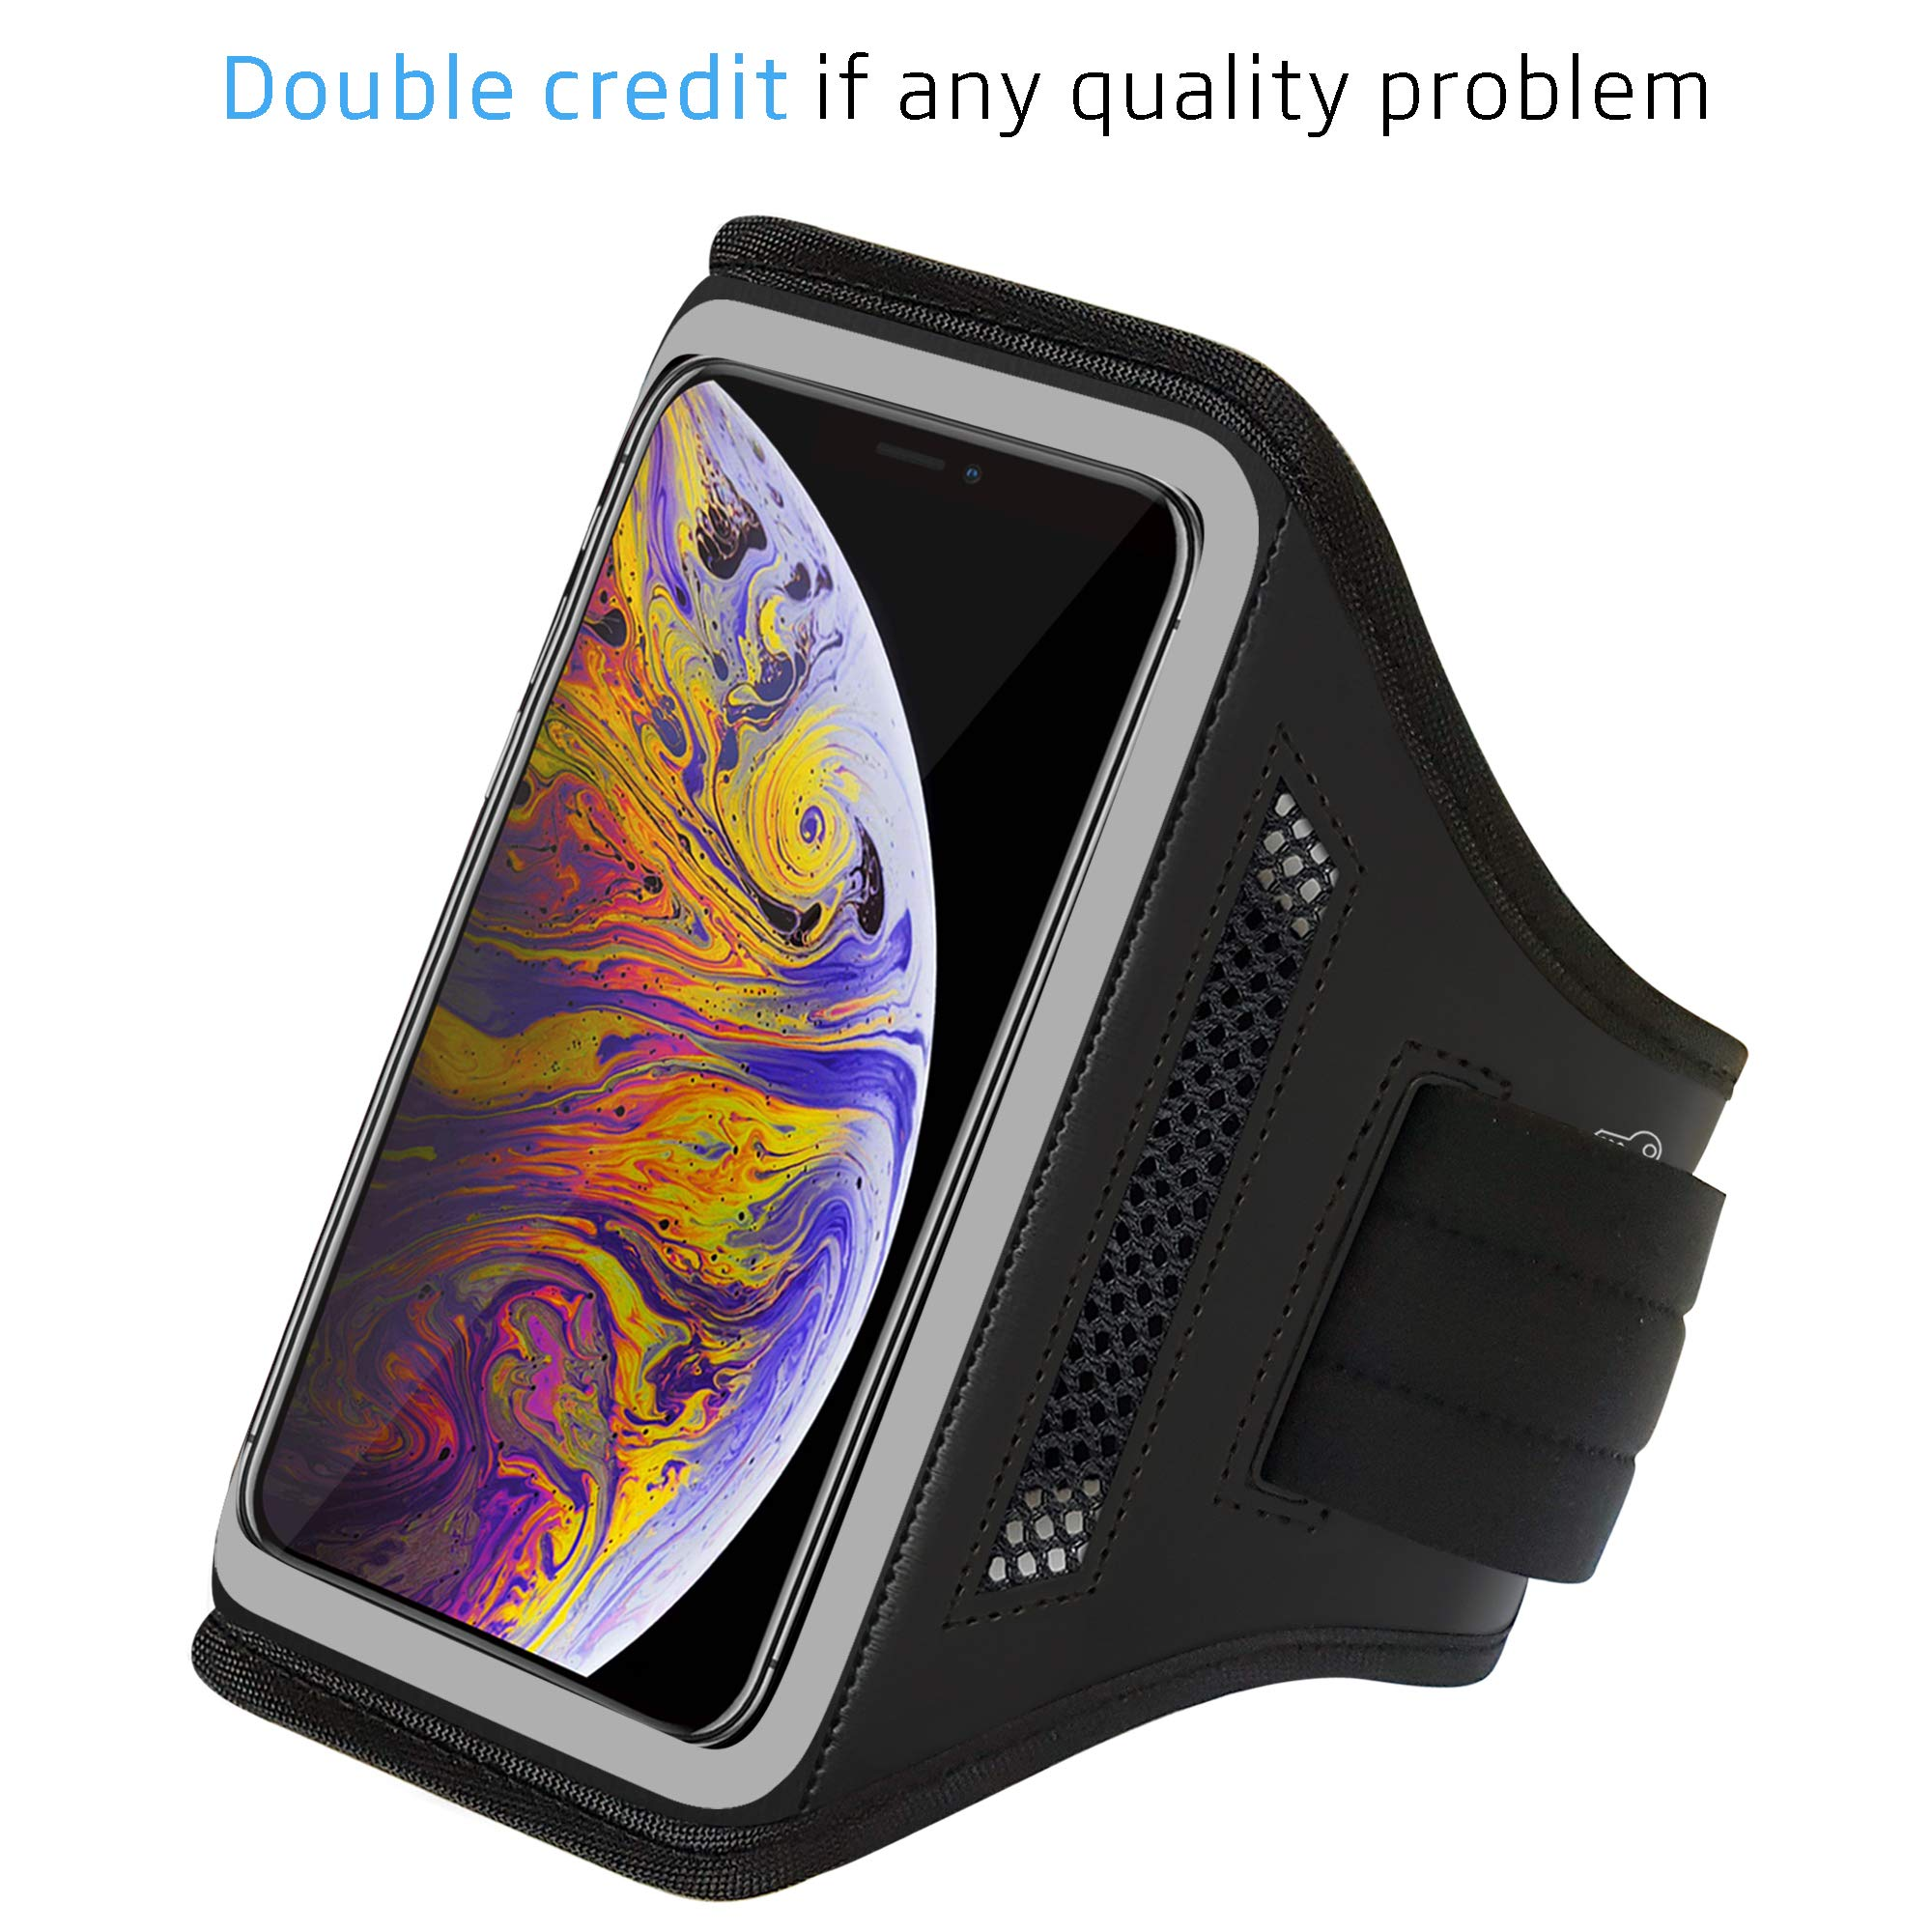 LOVPHONE Armband for iPhone iPhone Xs Max, Waterproof Sport Outdoor Gym Running Key Holder Card Slot Phone Case Bag Armband (Gray)